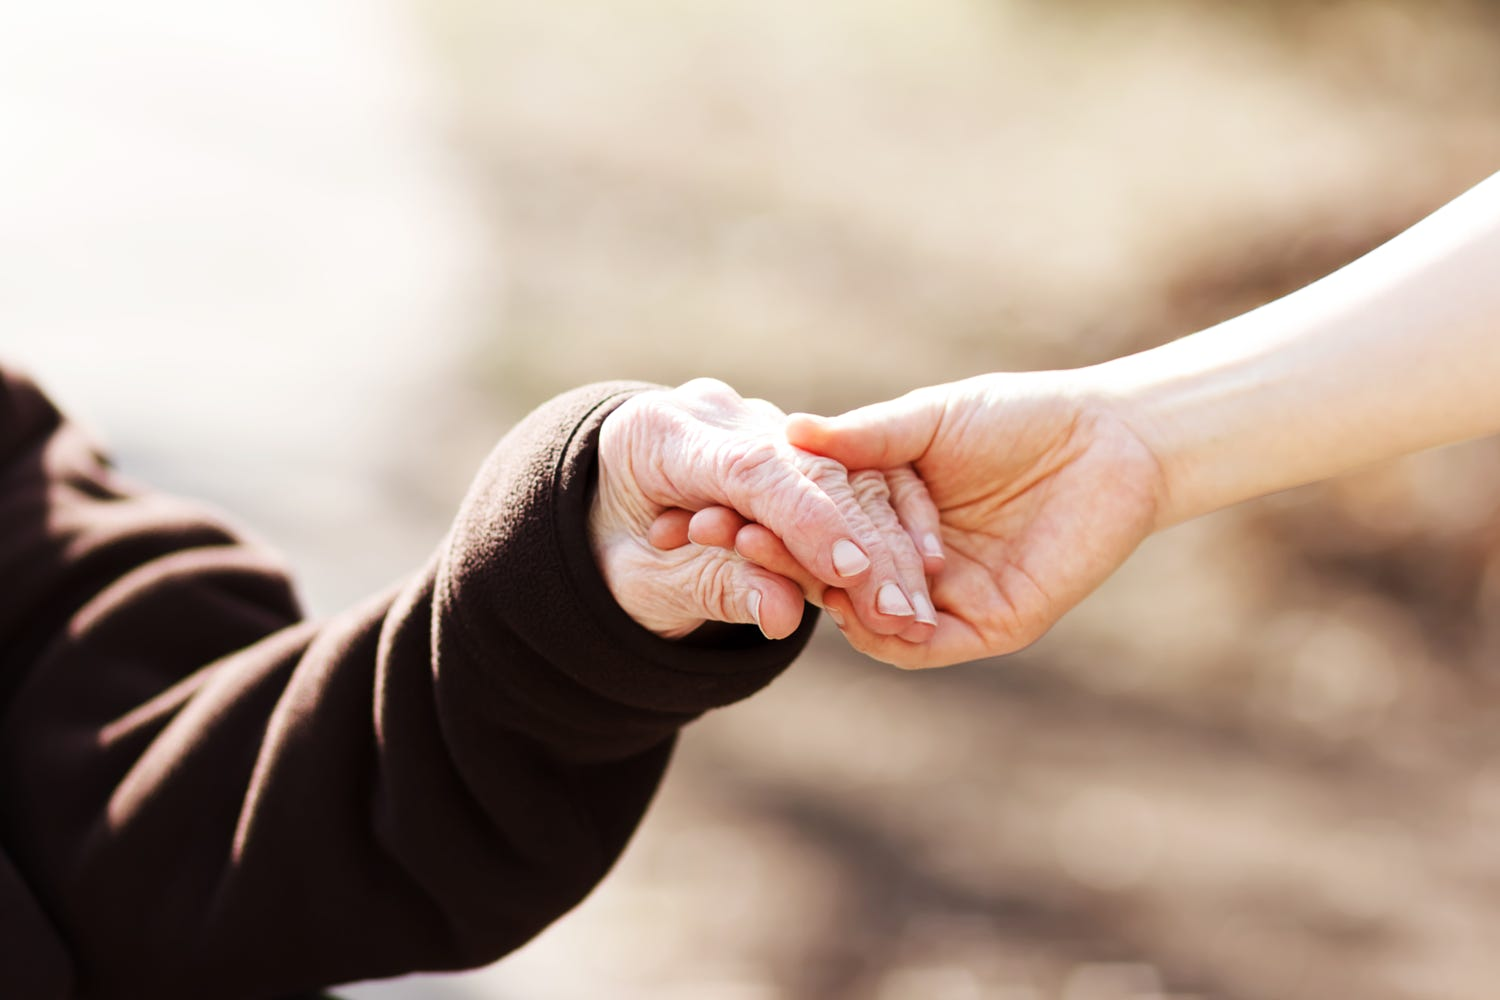 Tips To Relieve Stress When Caring For An Elder